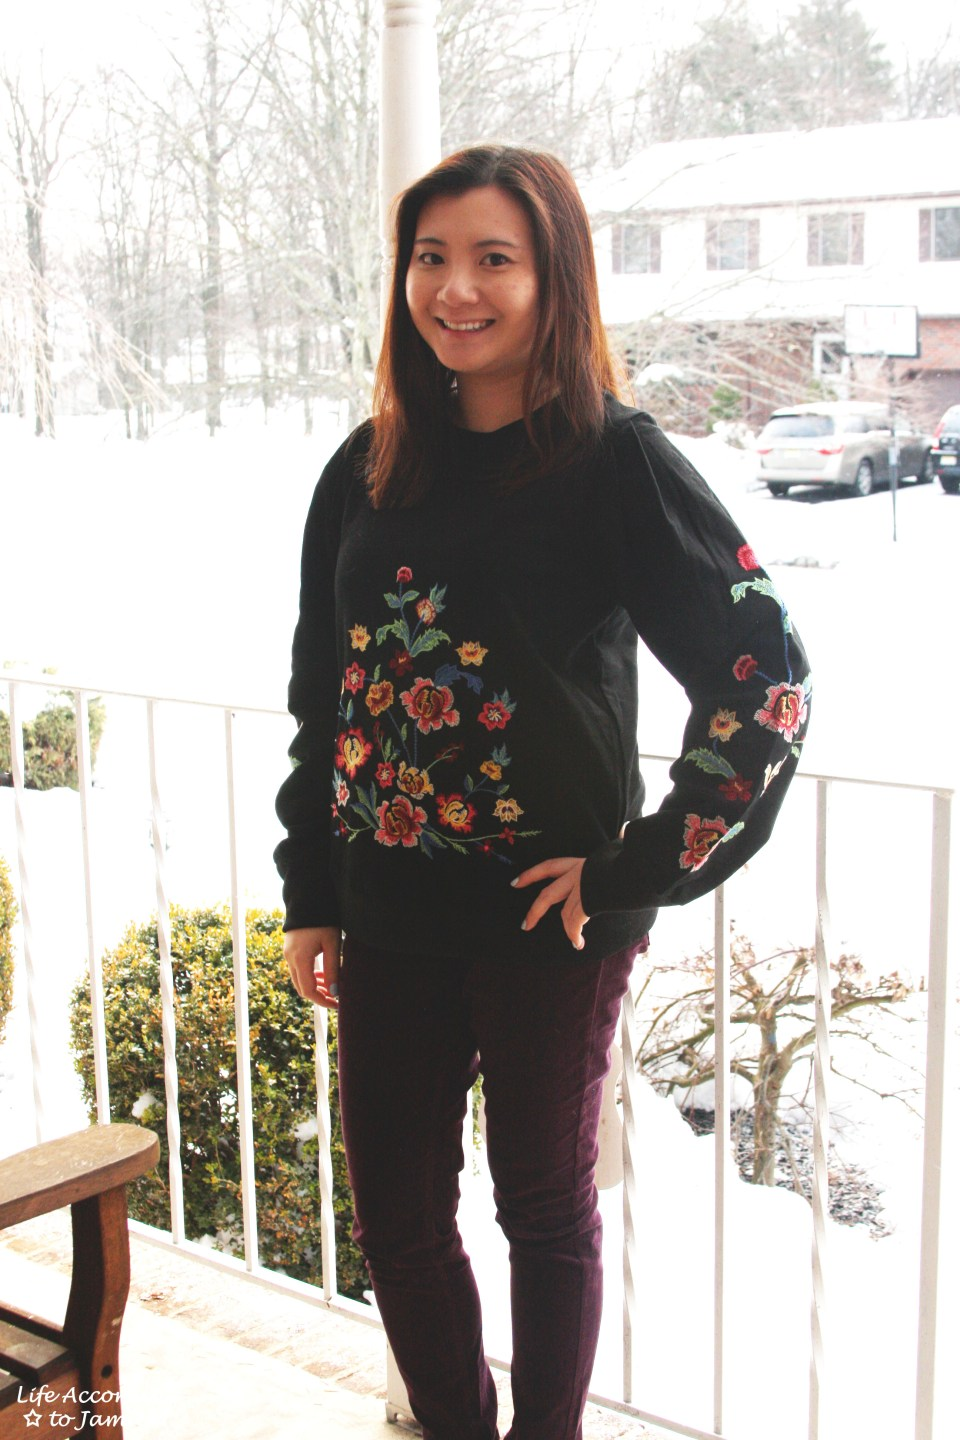 Floral Embroidered Sweatshirt 11